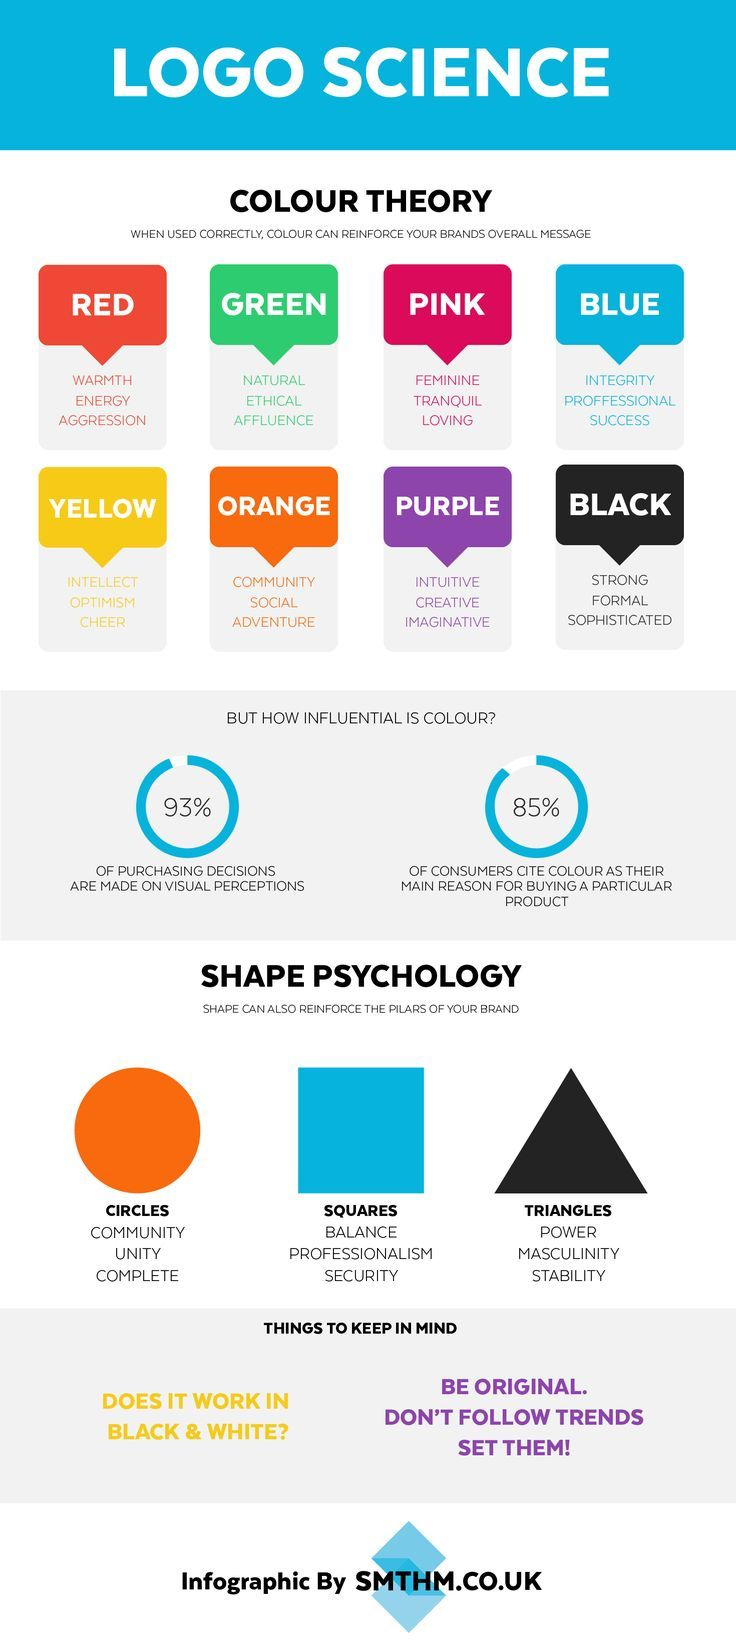 Psychology : Psychology : An infographic explaining the basics of colour theory and shape psychology in re…